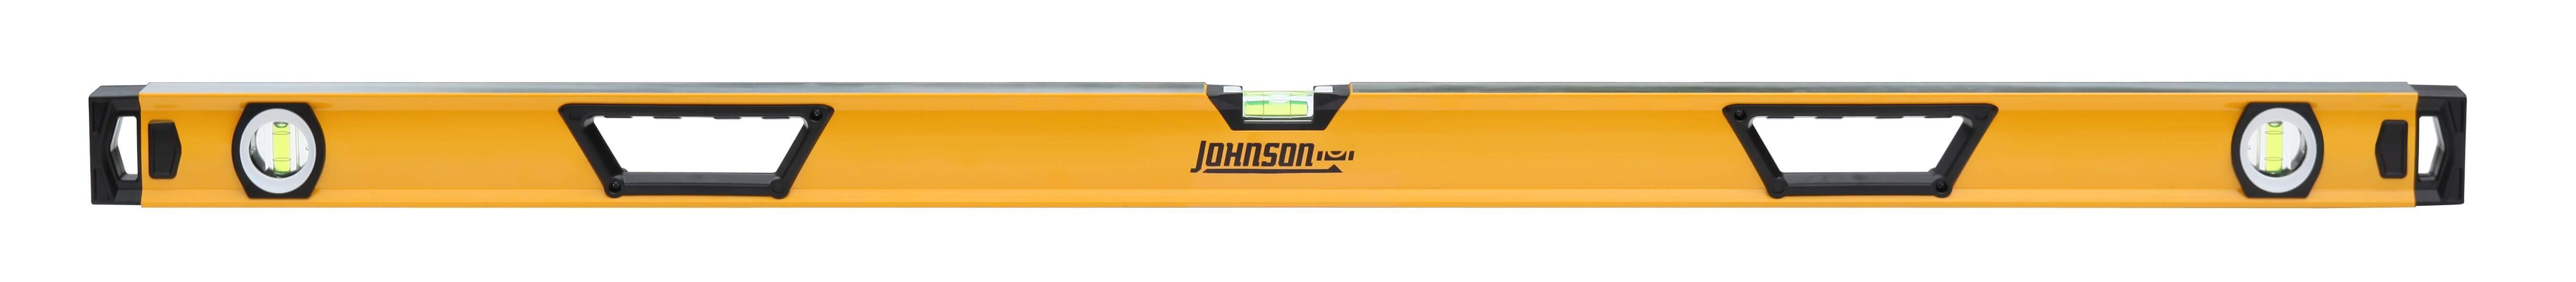 Johnson Level 48 Professional Aluminum Box Level 1741-4800